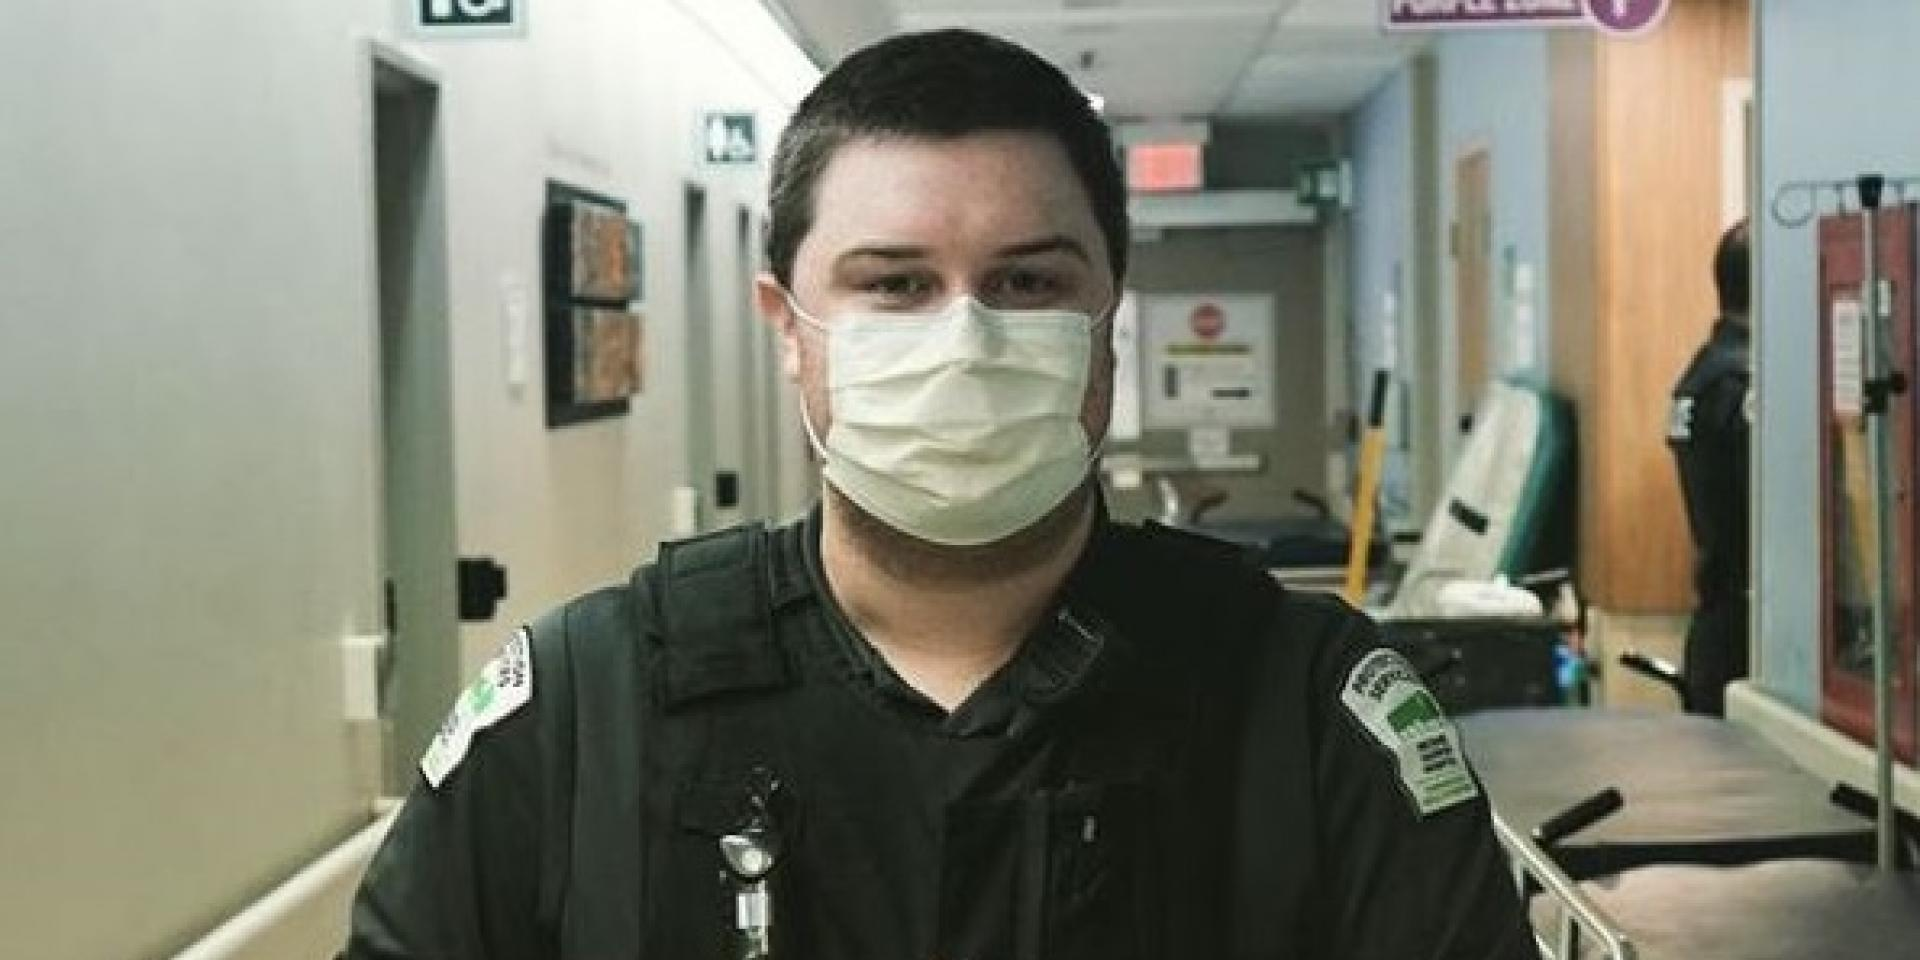 security guard wearing a mask